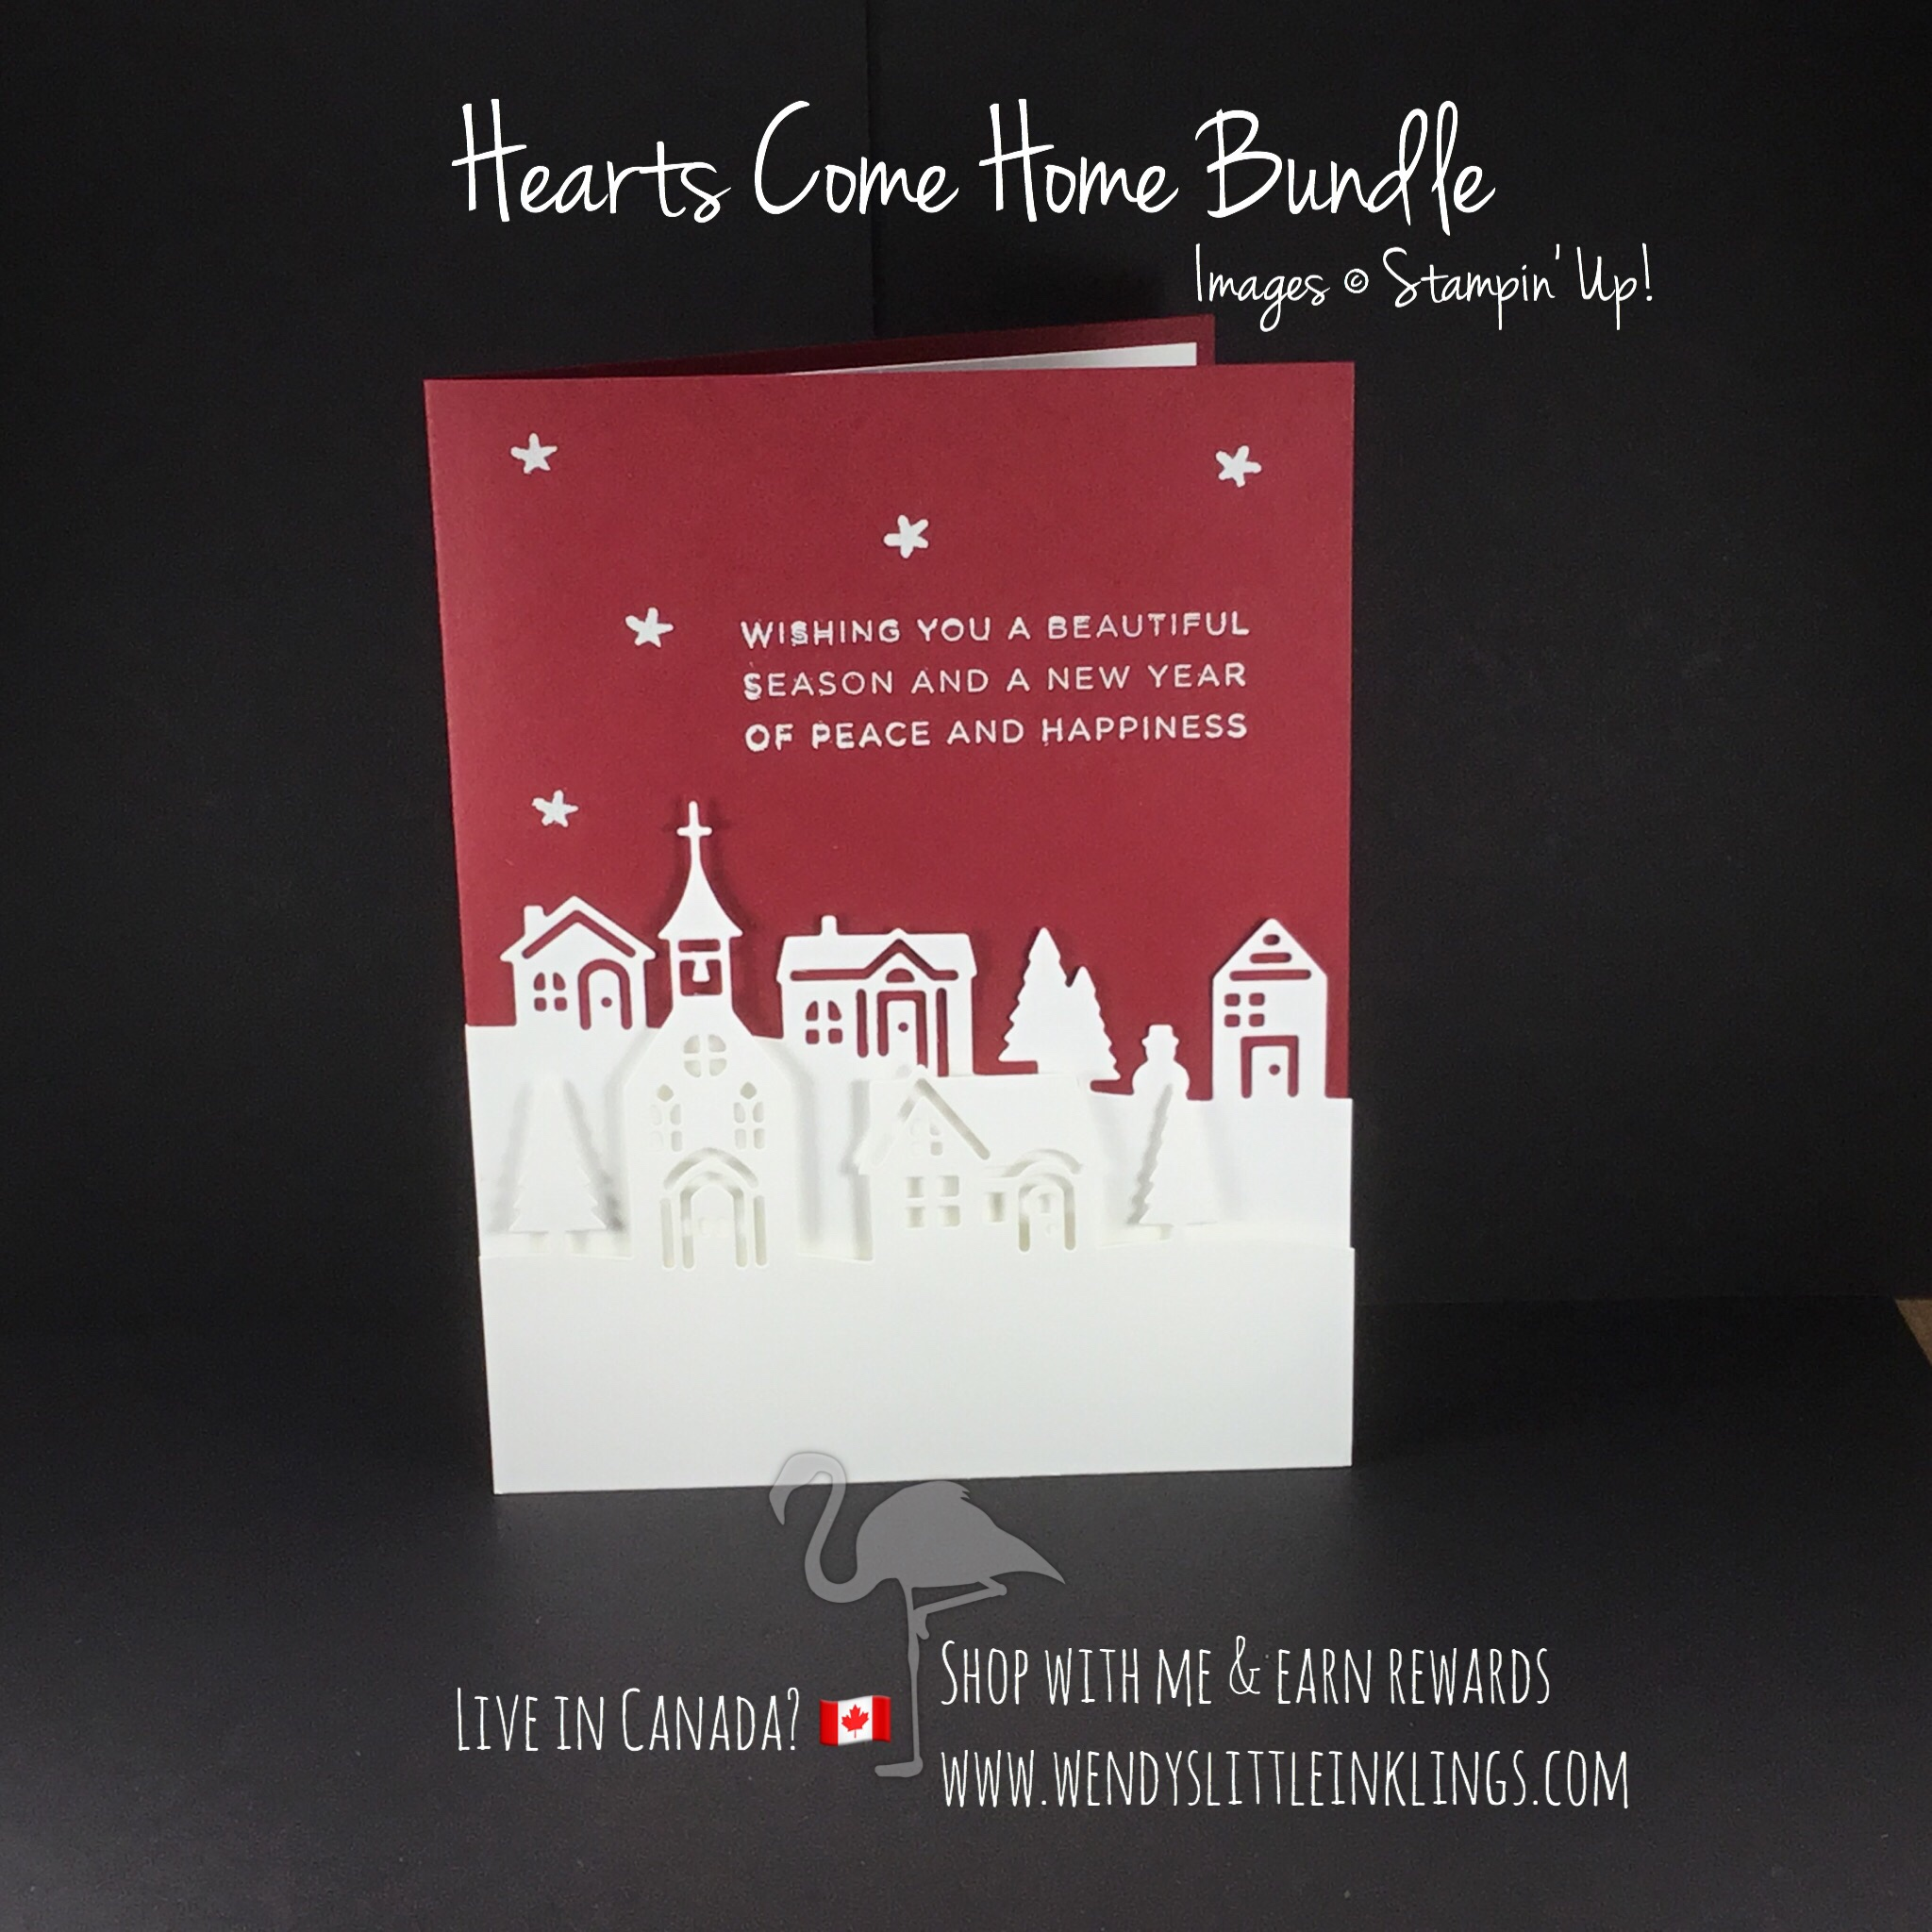 hearts-come-home-bundle